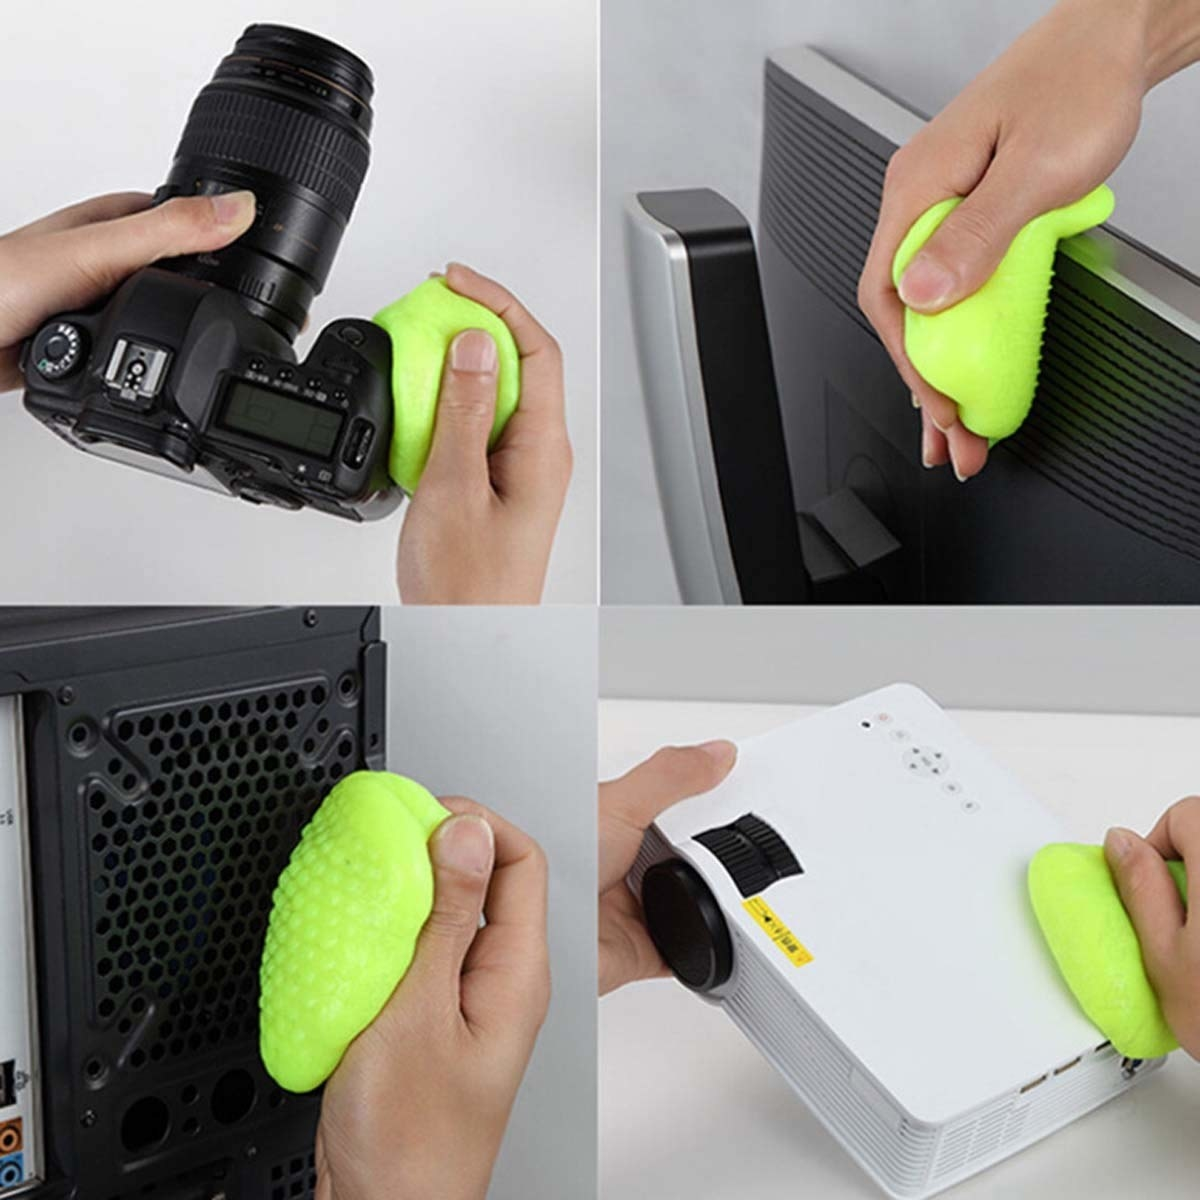 Cleaning gel used on gadgets like a camera, back of a monitor, projector, etc.